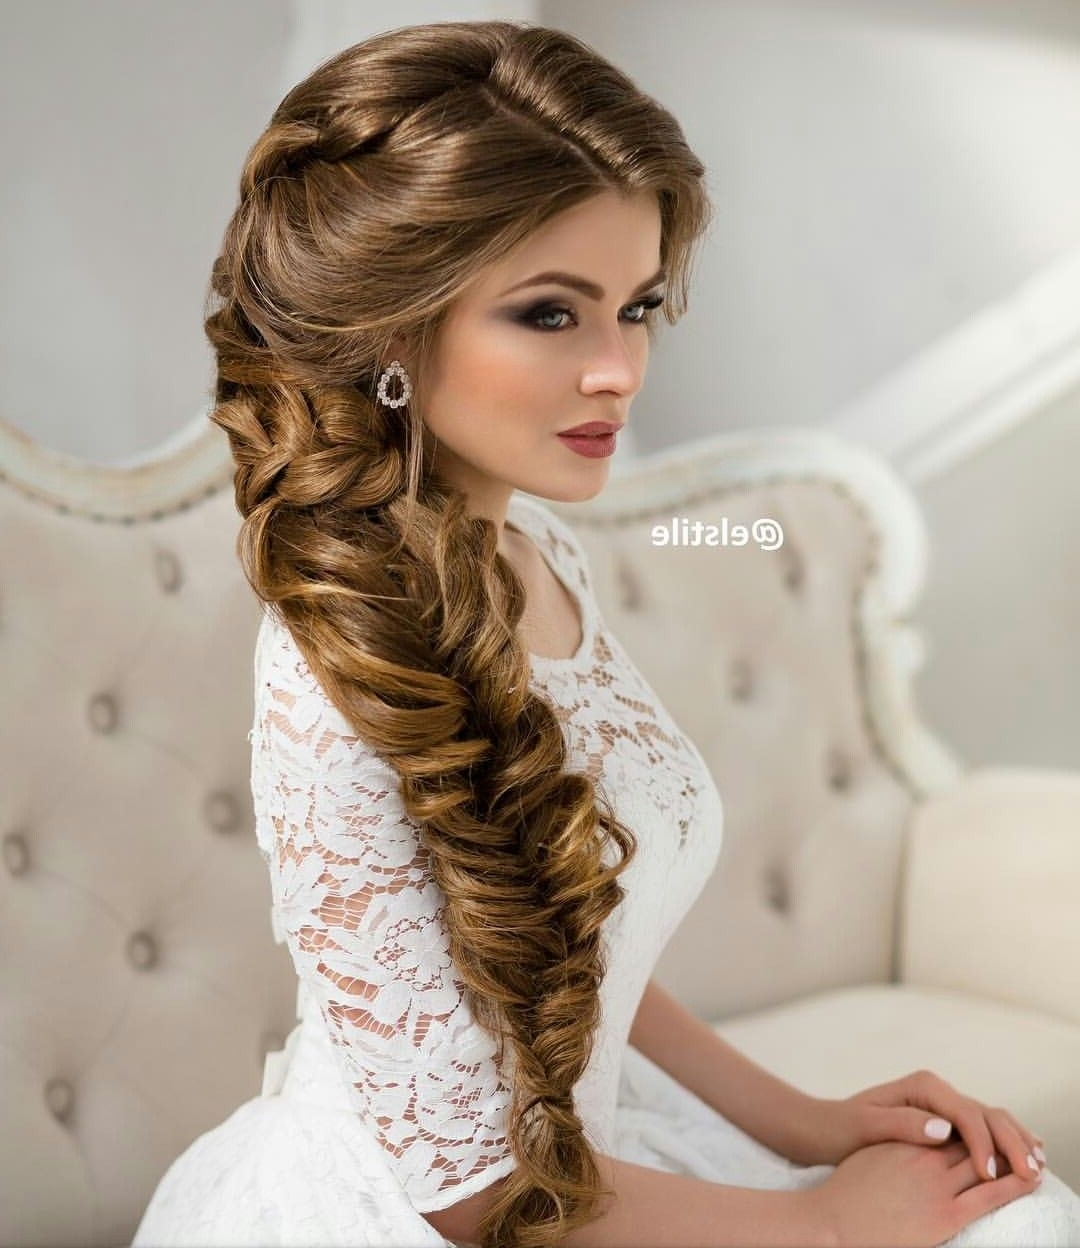 Long Braided Wedding Hairstyle Via Elstile In Widely Used Wedding Hairstyles For Long Hair With Braids (View 6 of 15)